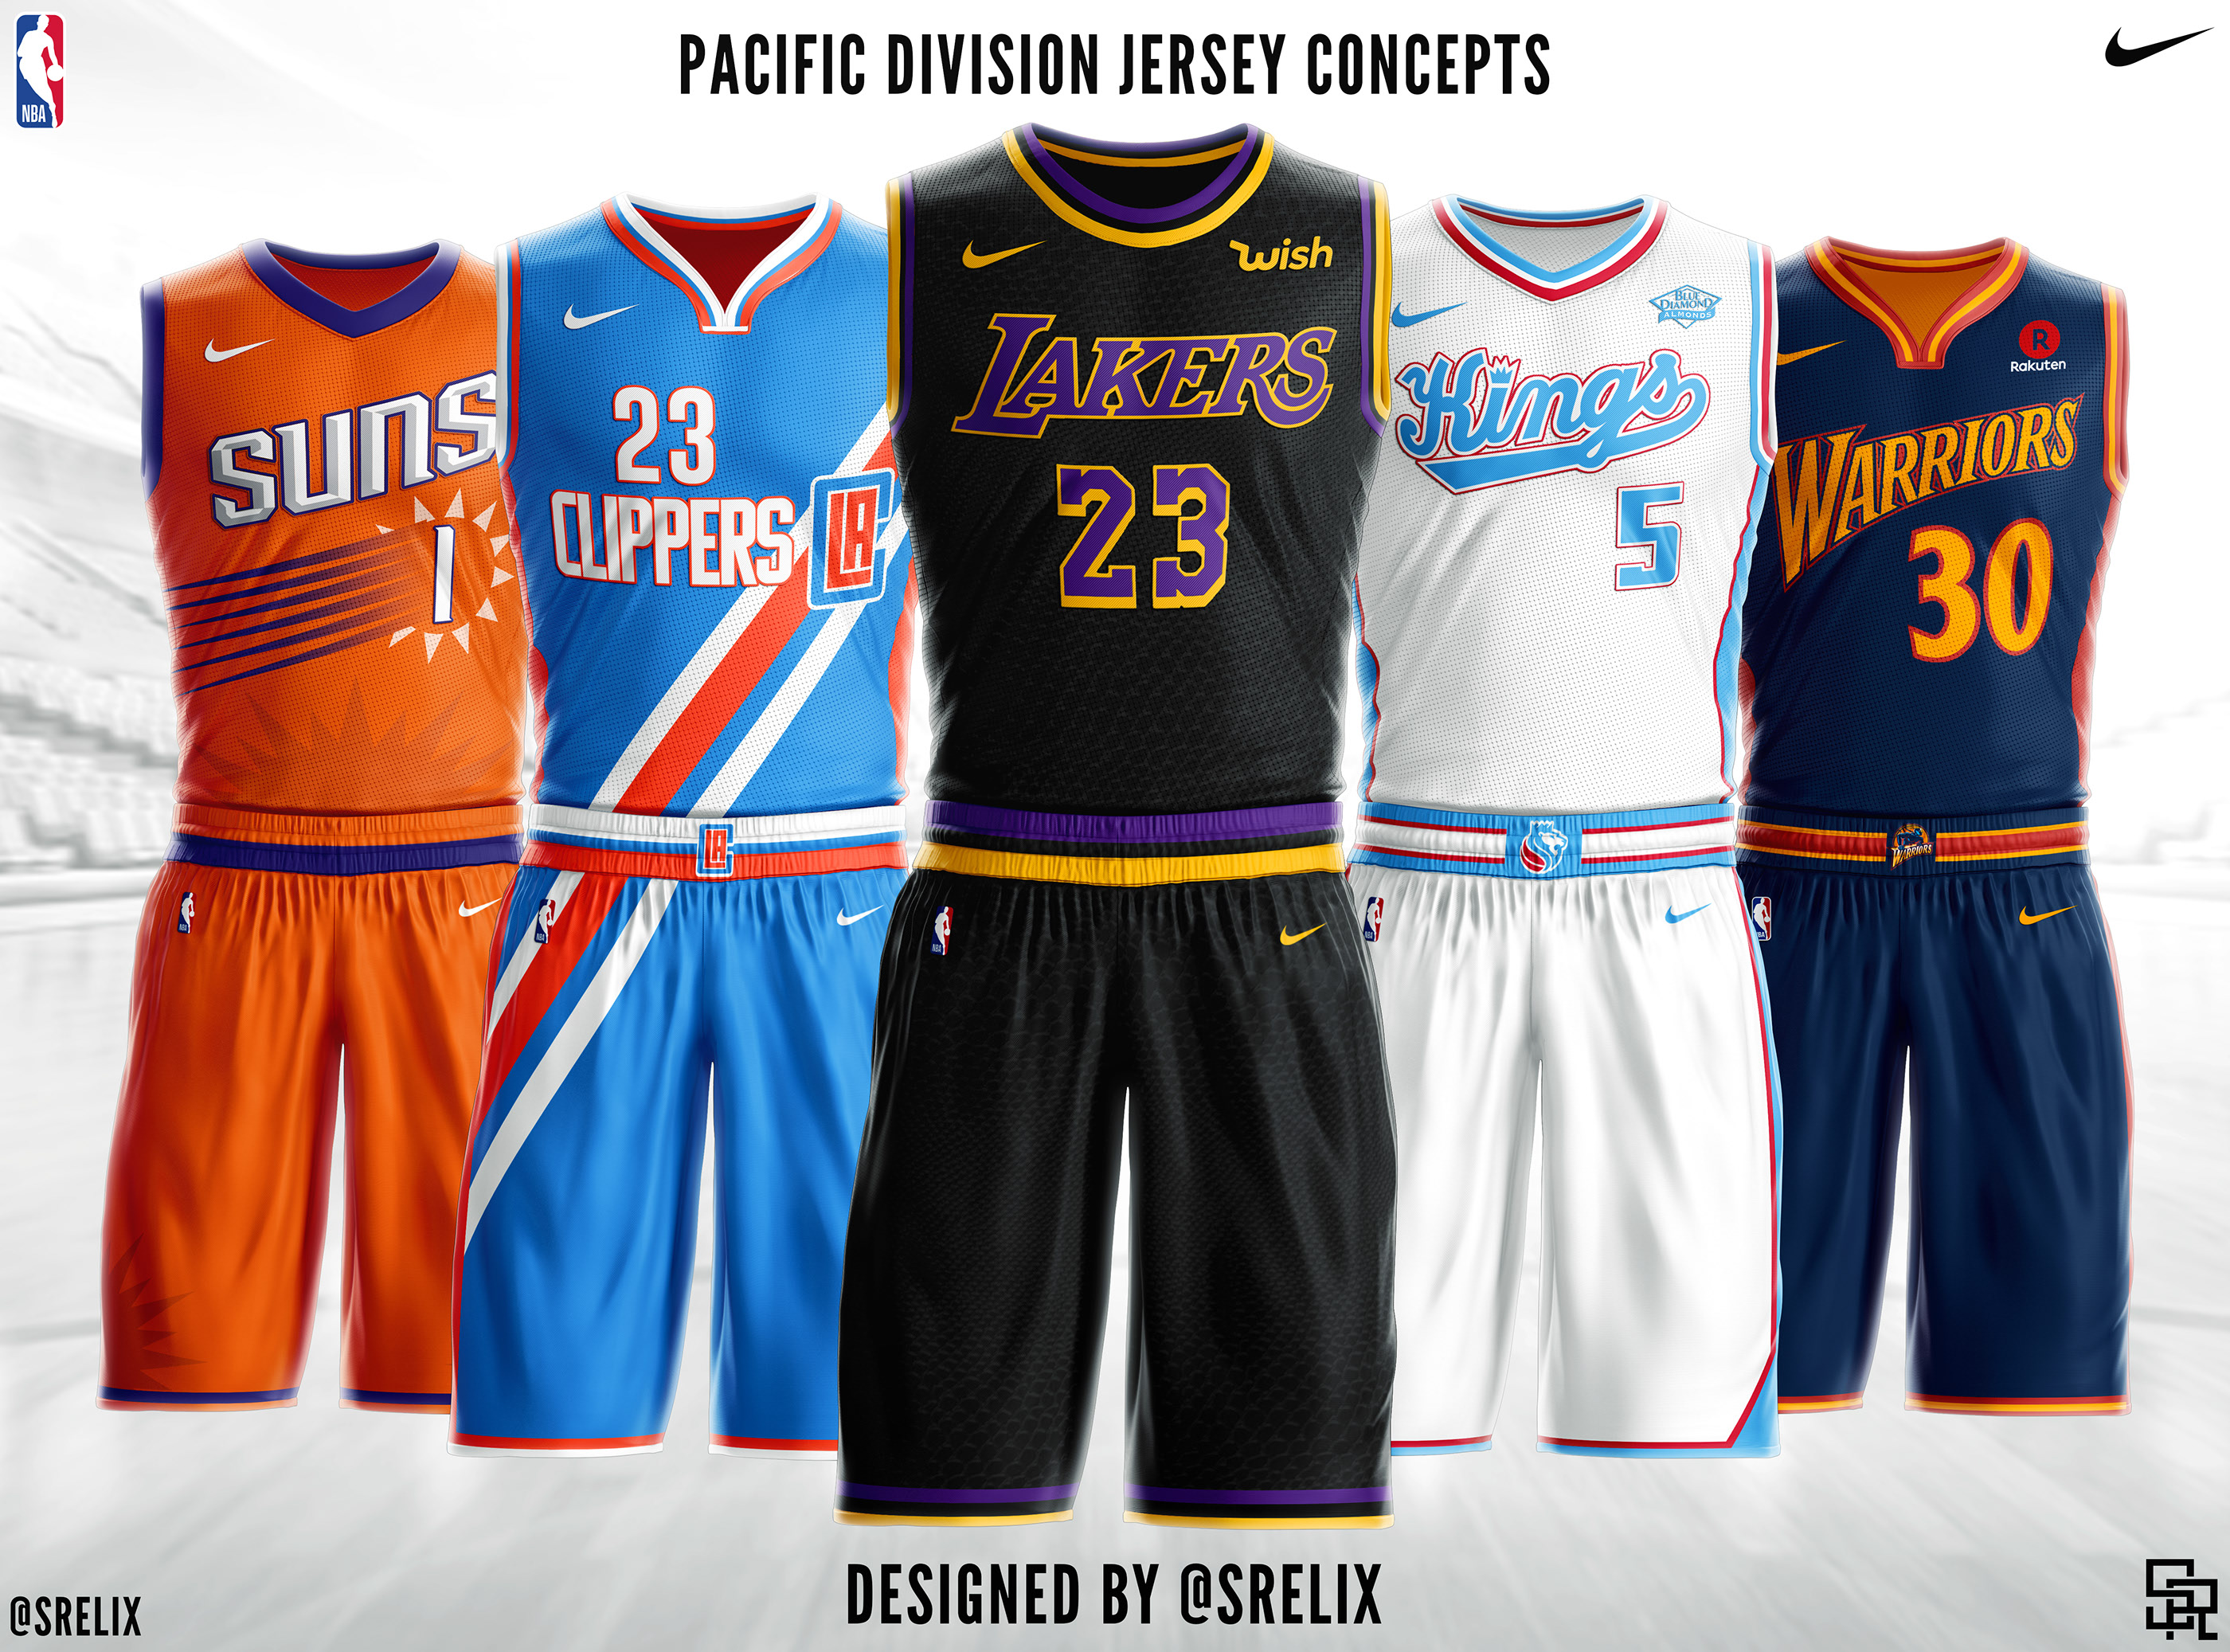 reputable site d04b2 9f509 NBA Jersey Concepts on Behance